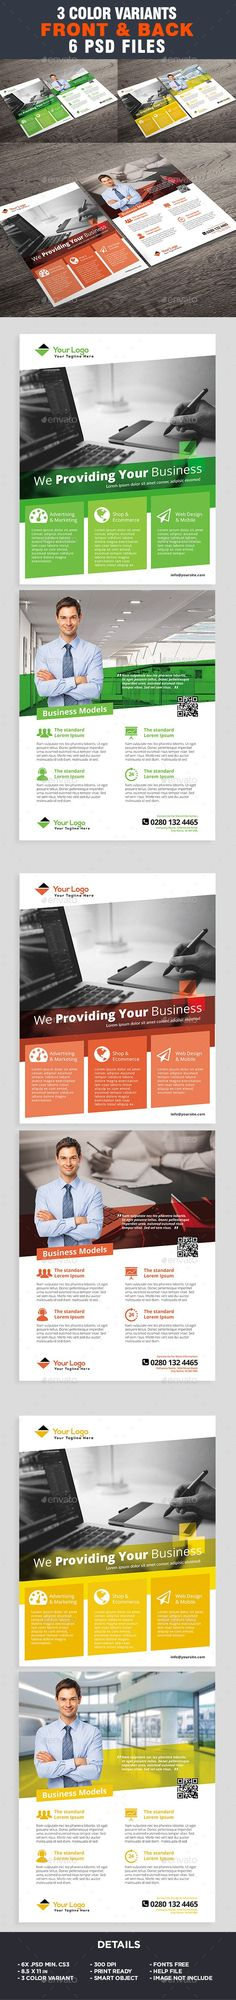 Corporate Flyer Template - Business Flyer by ivanjoys19 All elements beside the image are fully editable CMYK �20print readyLetter: 8.5×11 in. (potrait)   0.25 in. bleedFiles included :